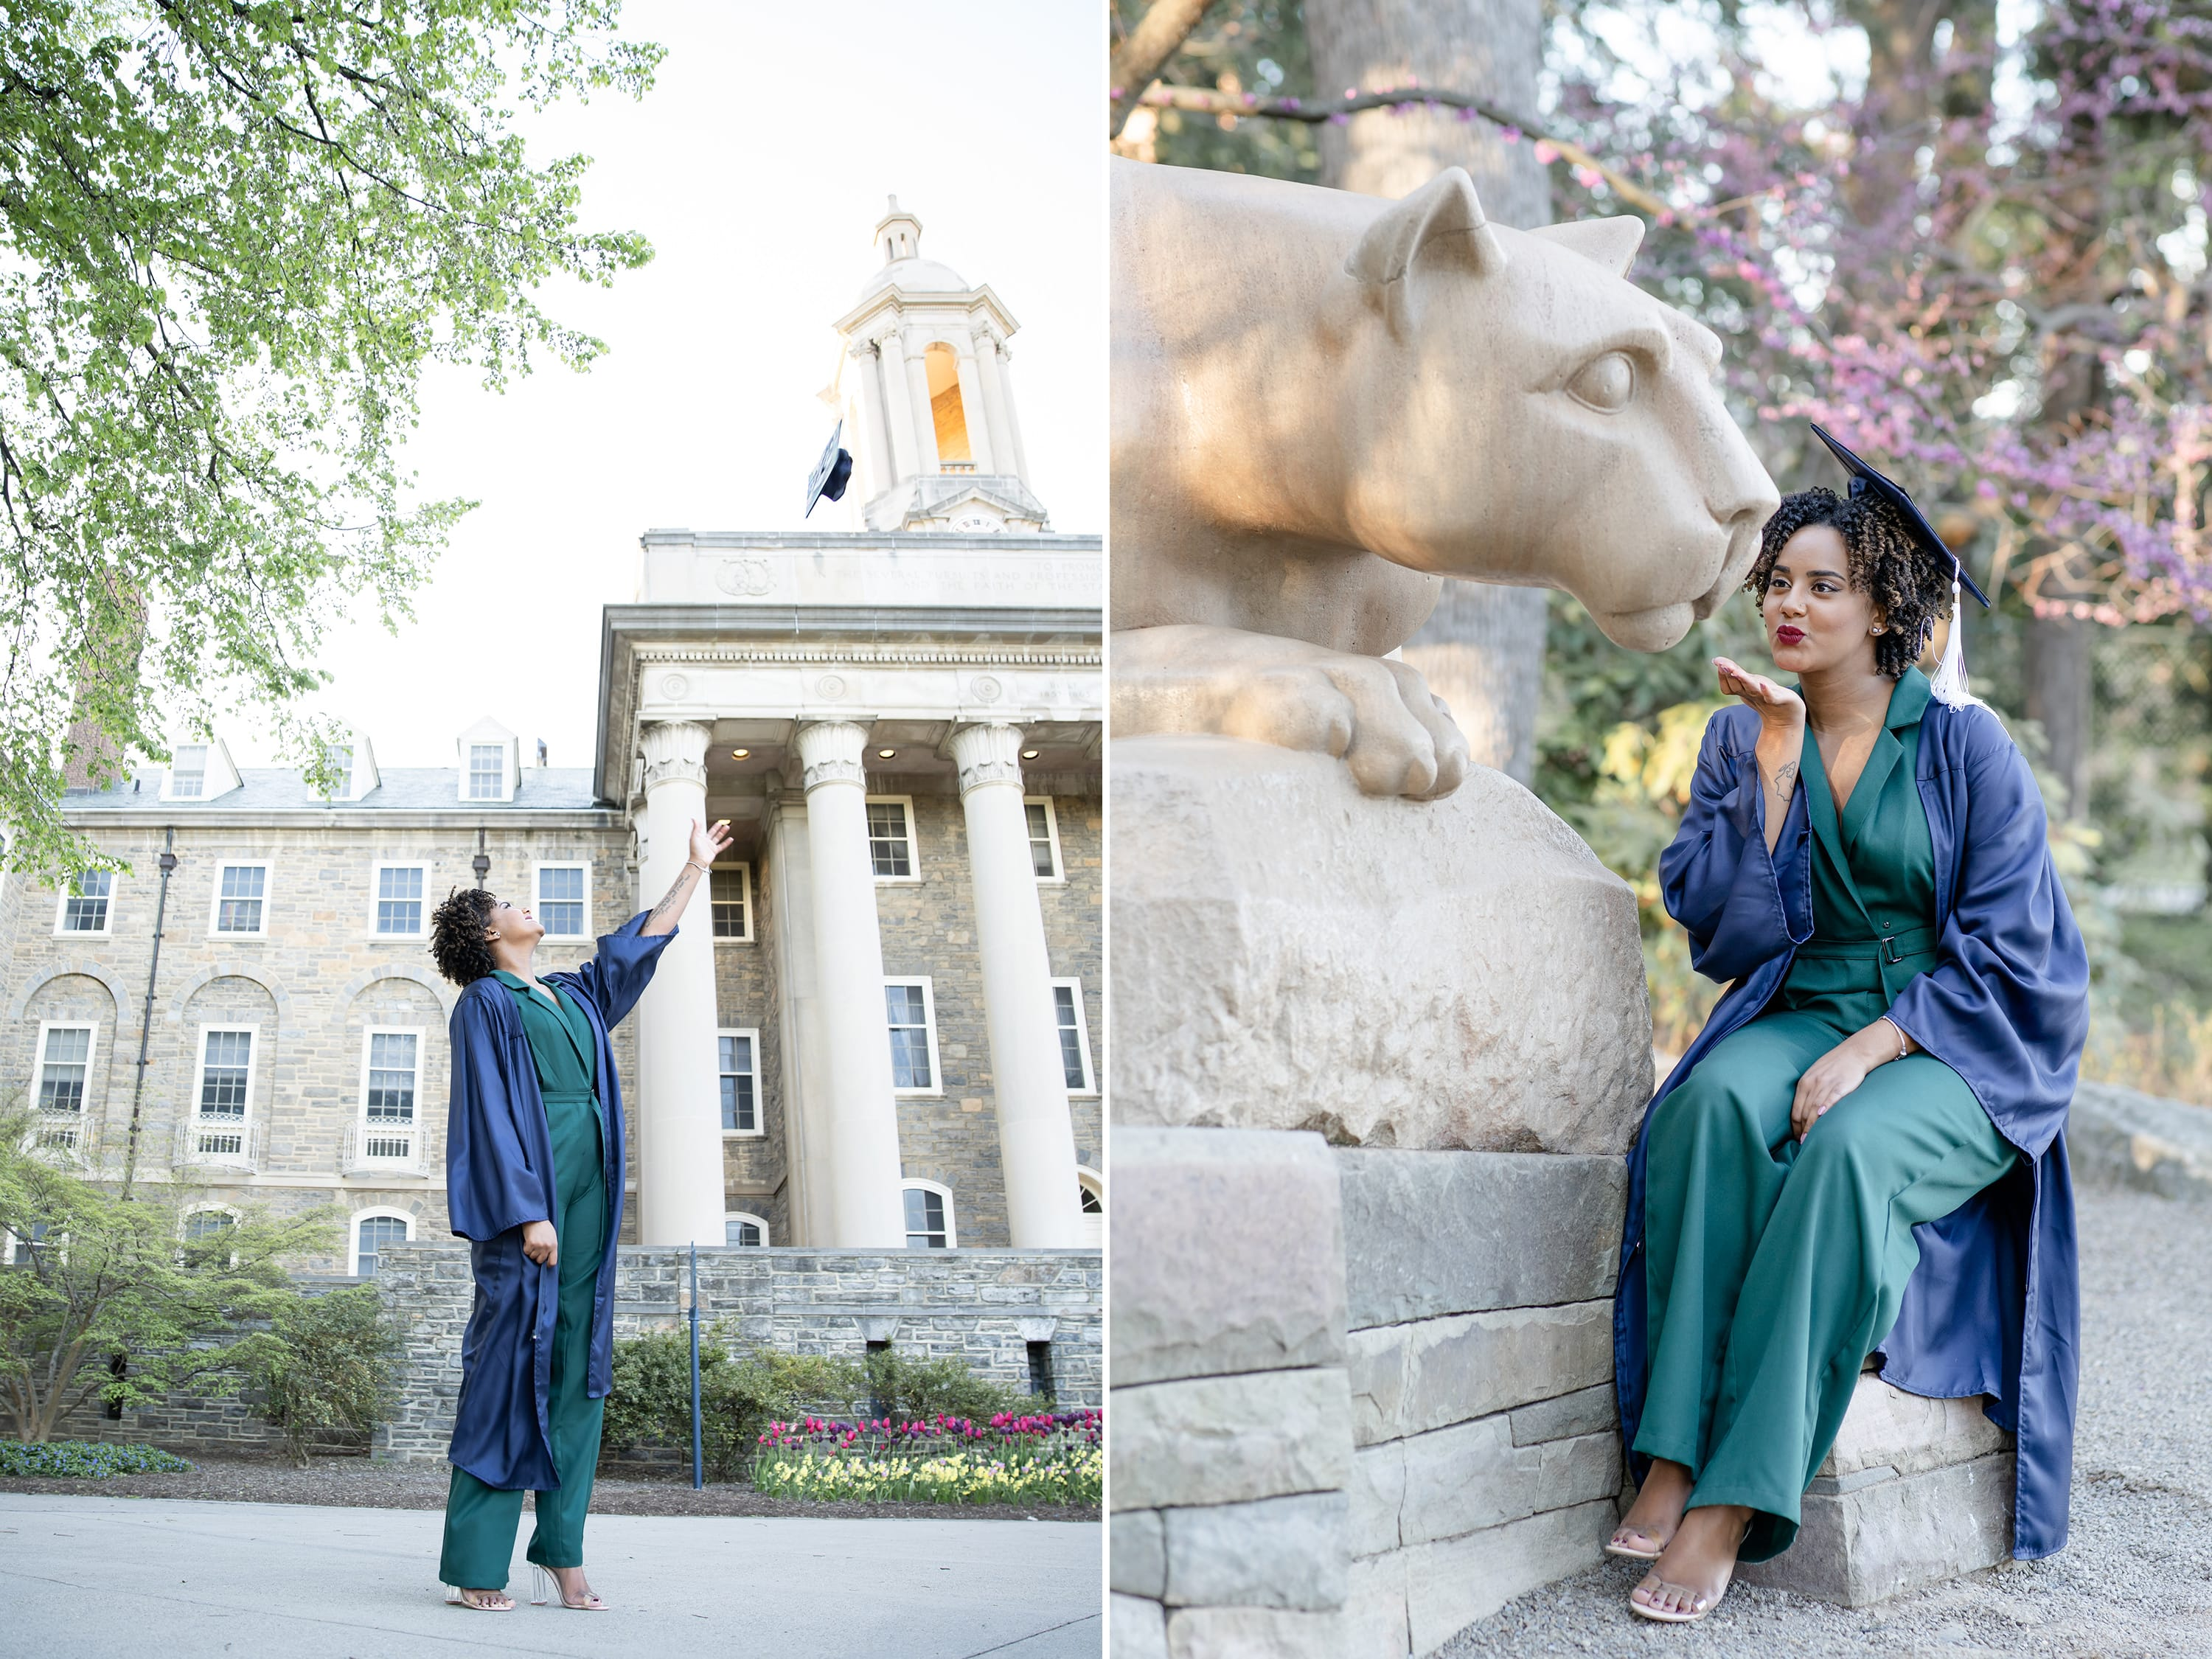 Class of 2020 Penn State graduate at Old Main and Nittany lion shrine